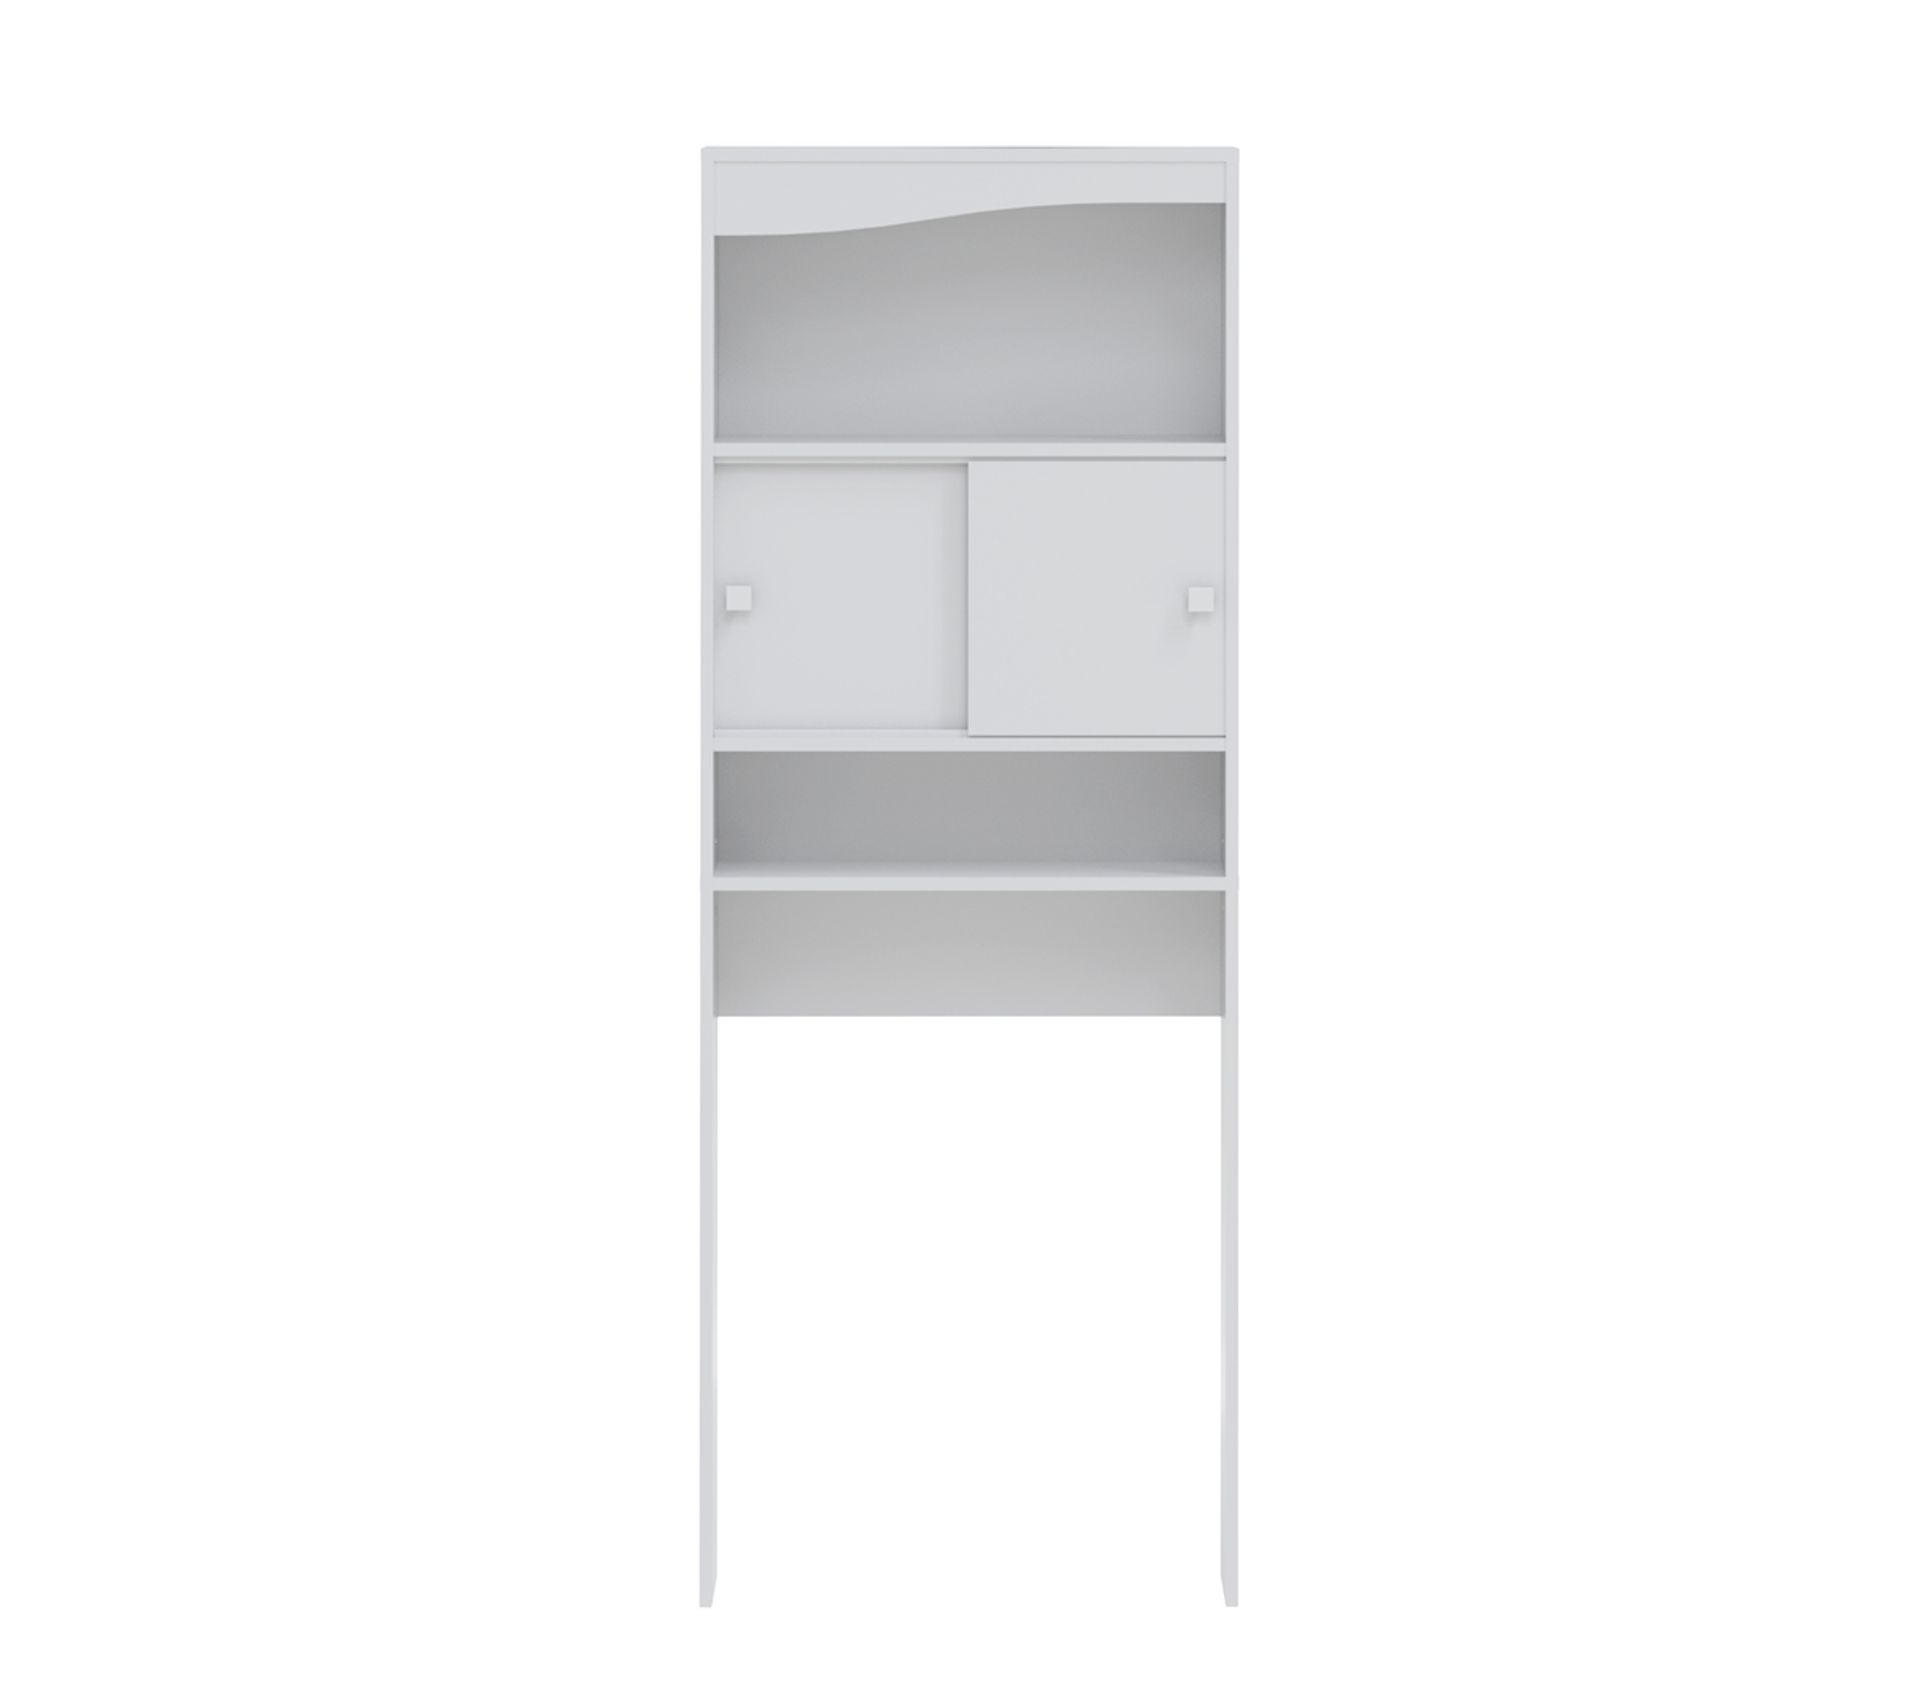 Meuble Wc Ou Machine A Laver L 64 Cm Blanc Mat Meuble Wc But